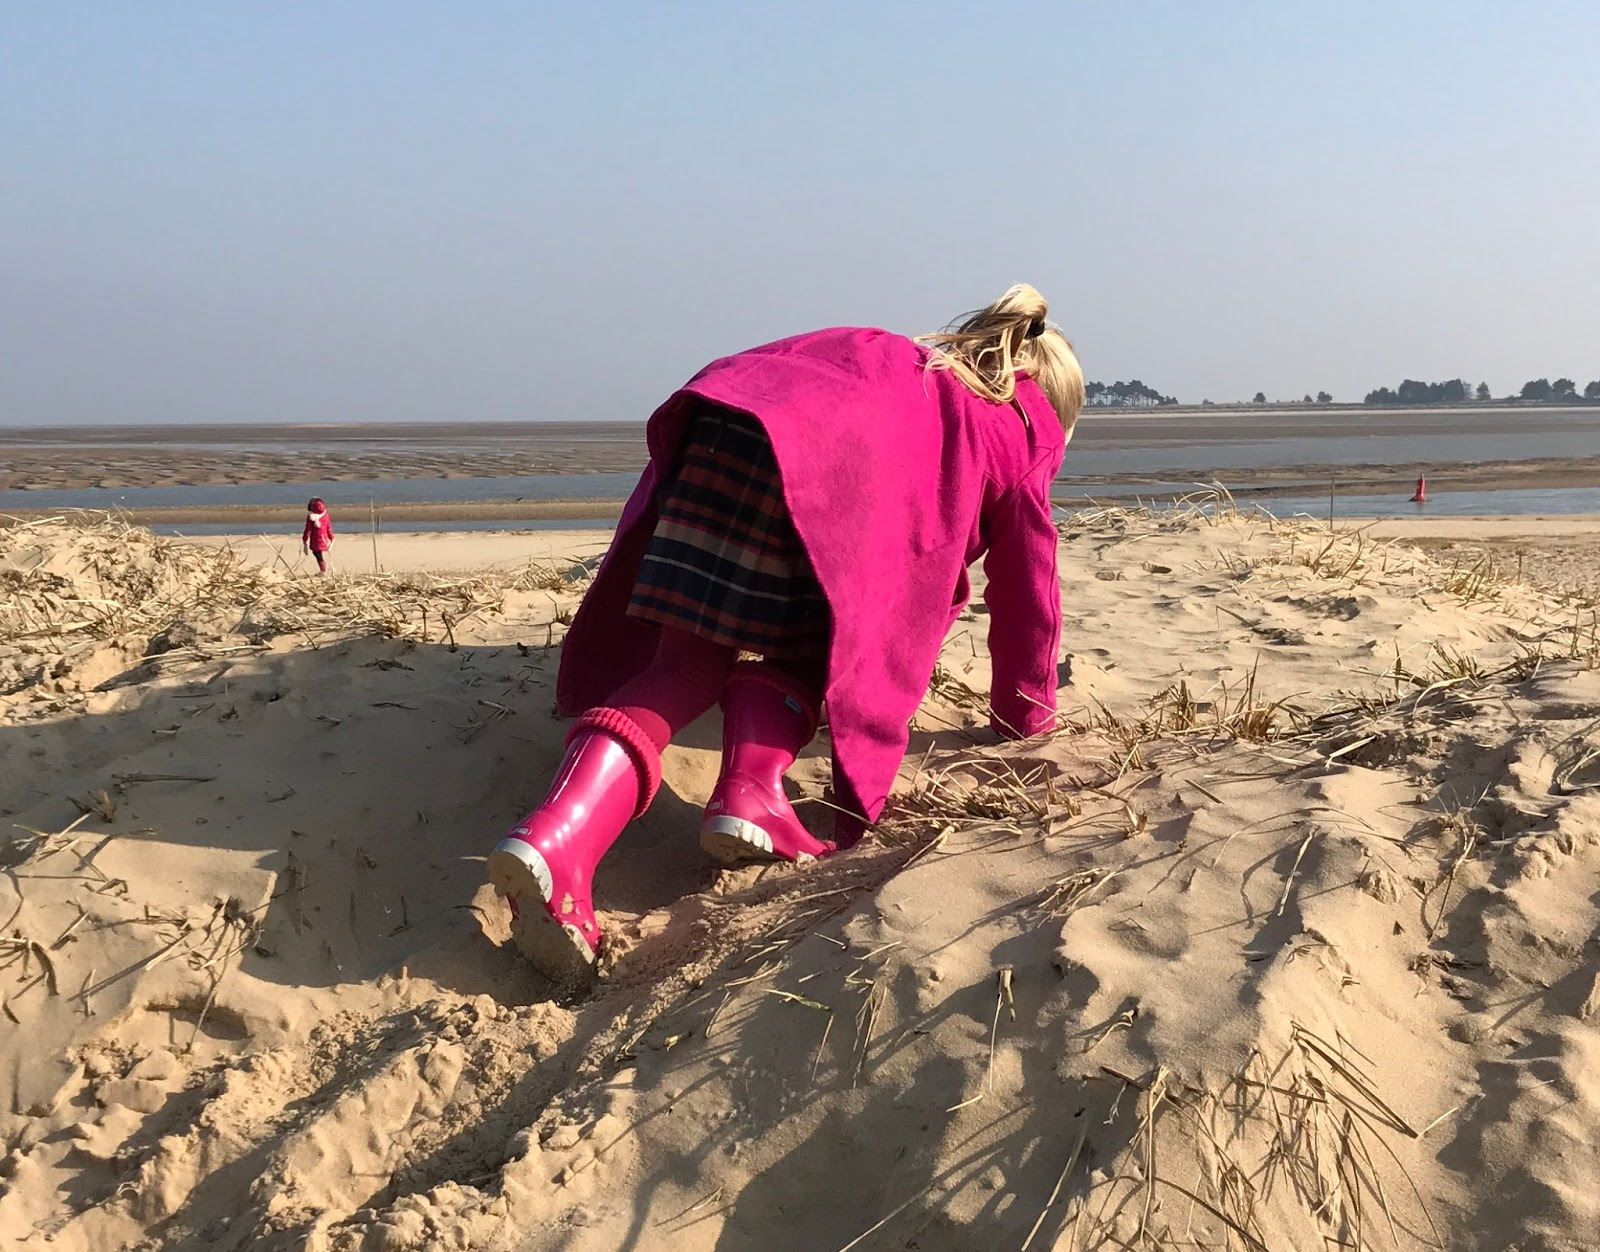 A 5 year old girl in pink coat, tights and wellies climbing up a sand dune on all fours